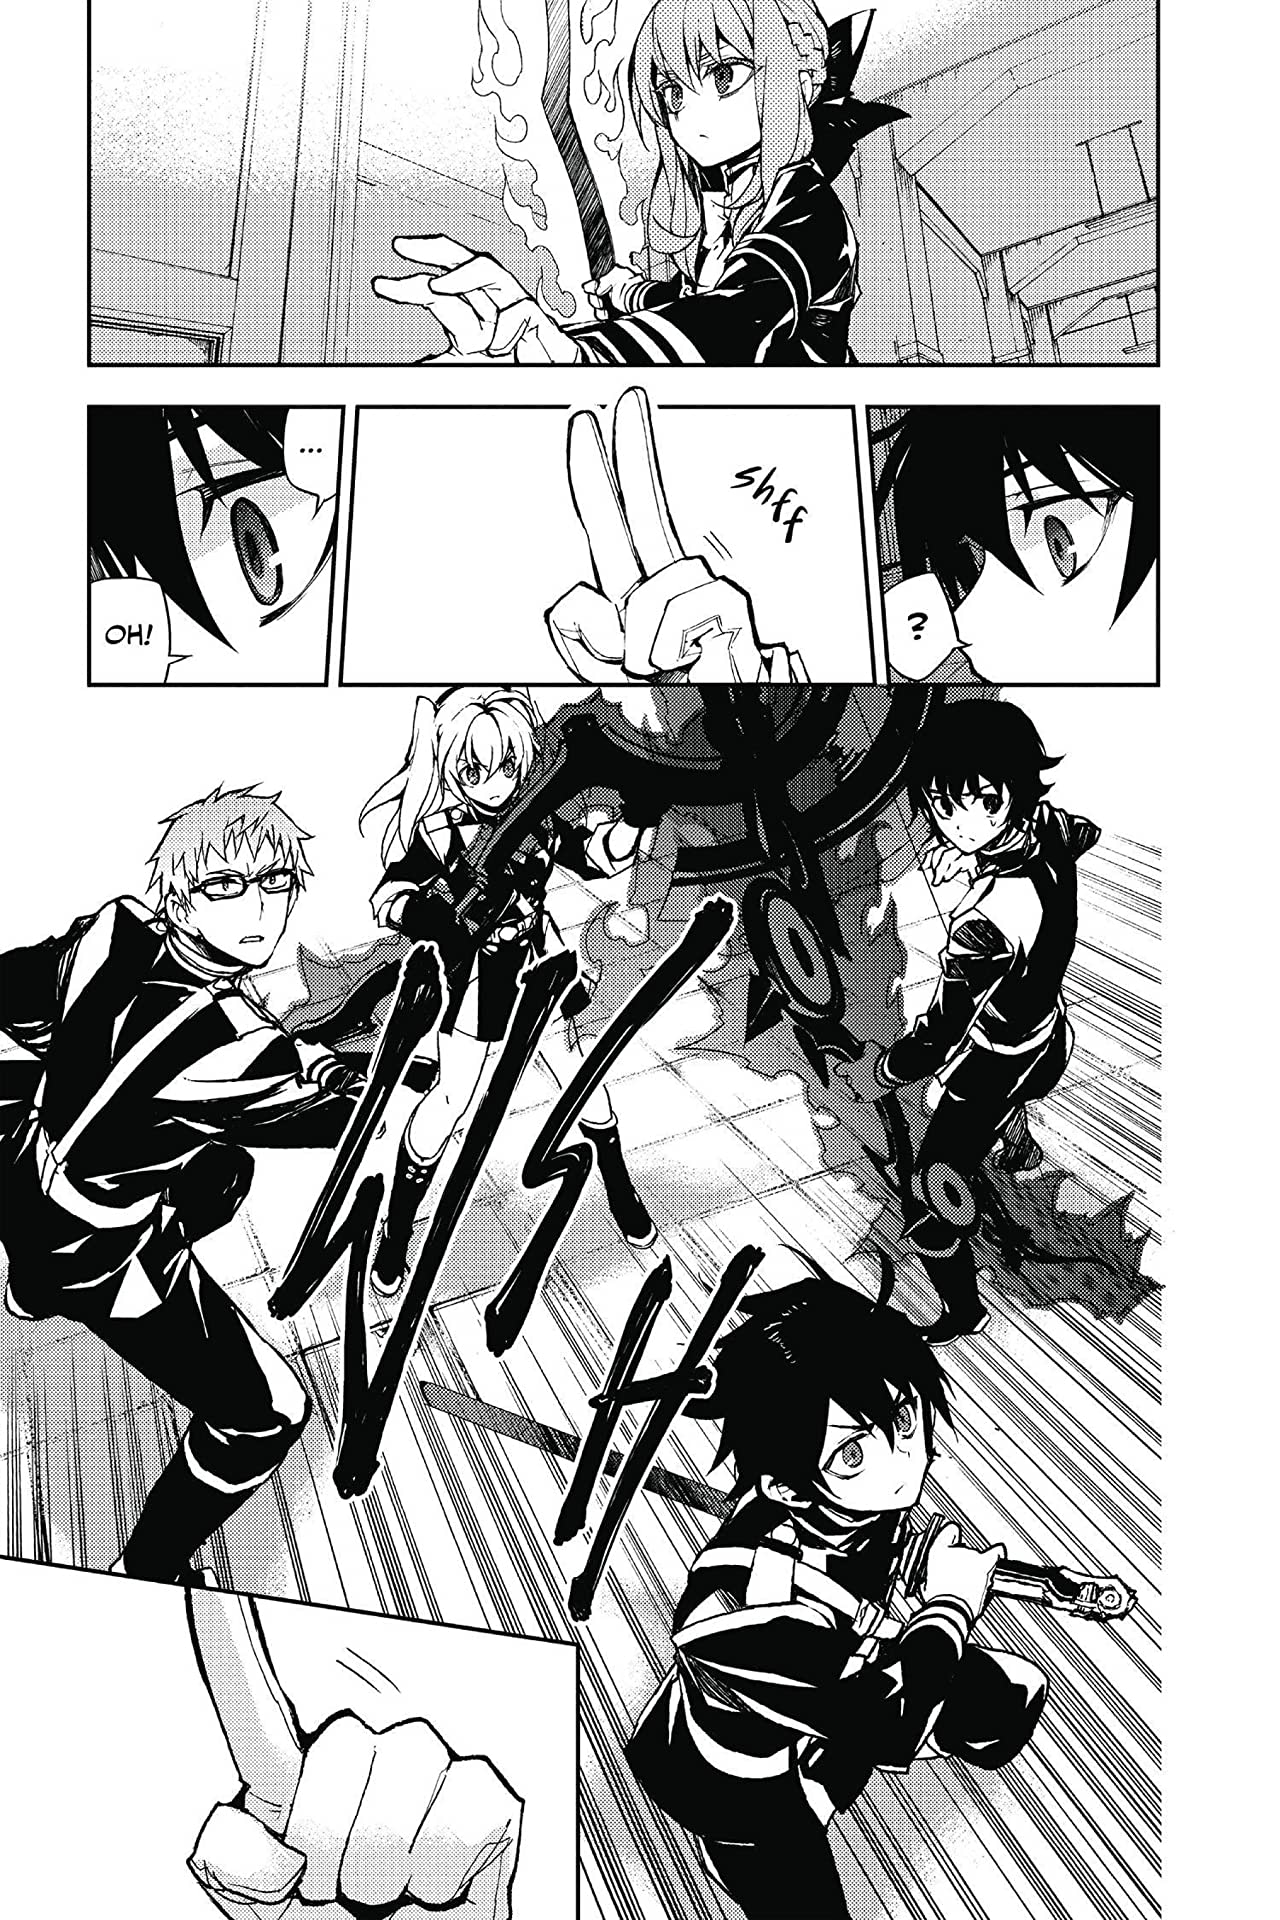 Seraph of the End Vol. 9